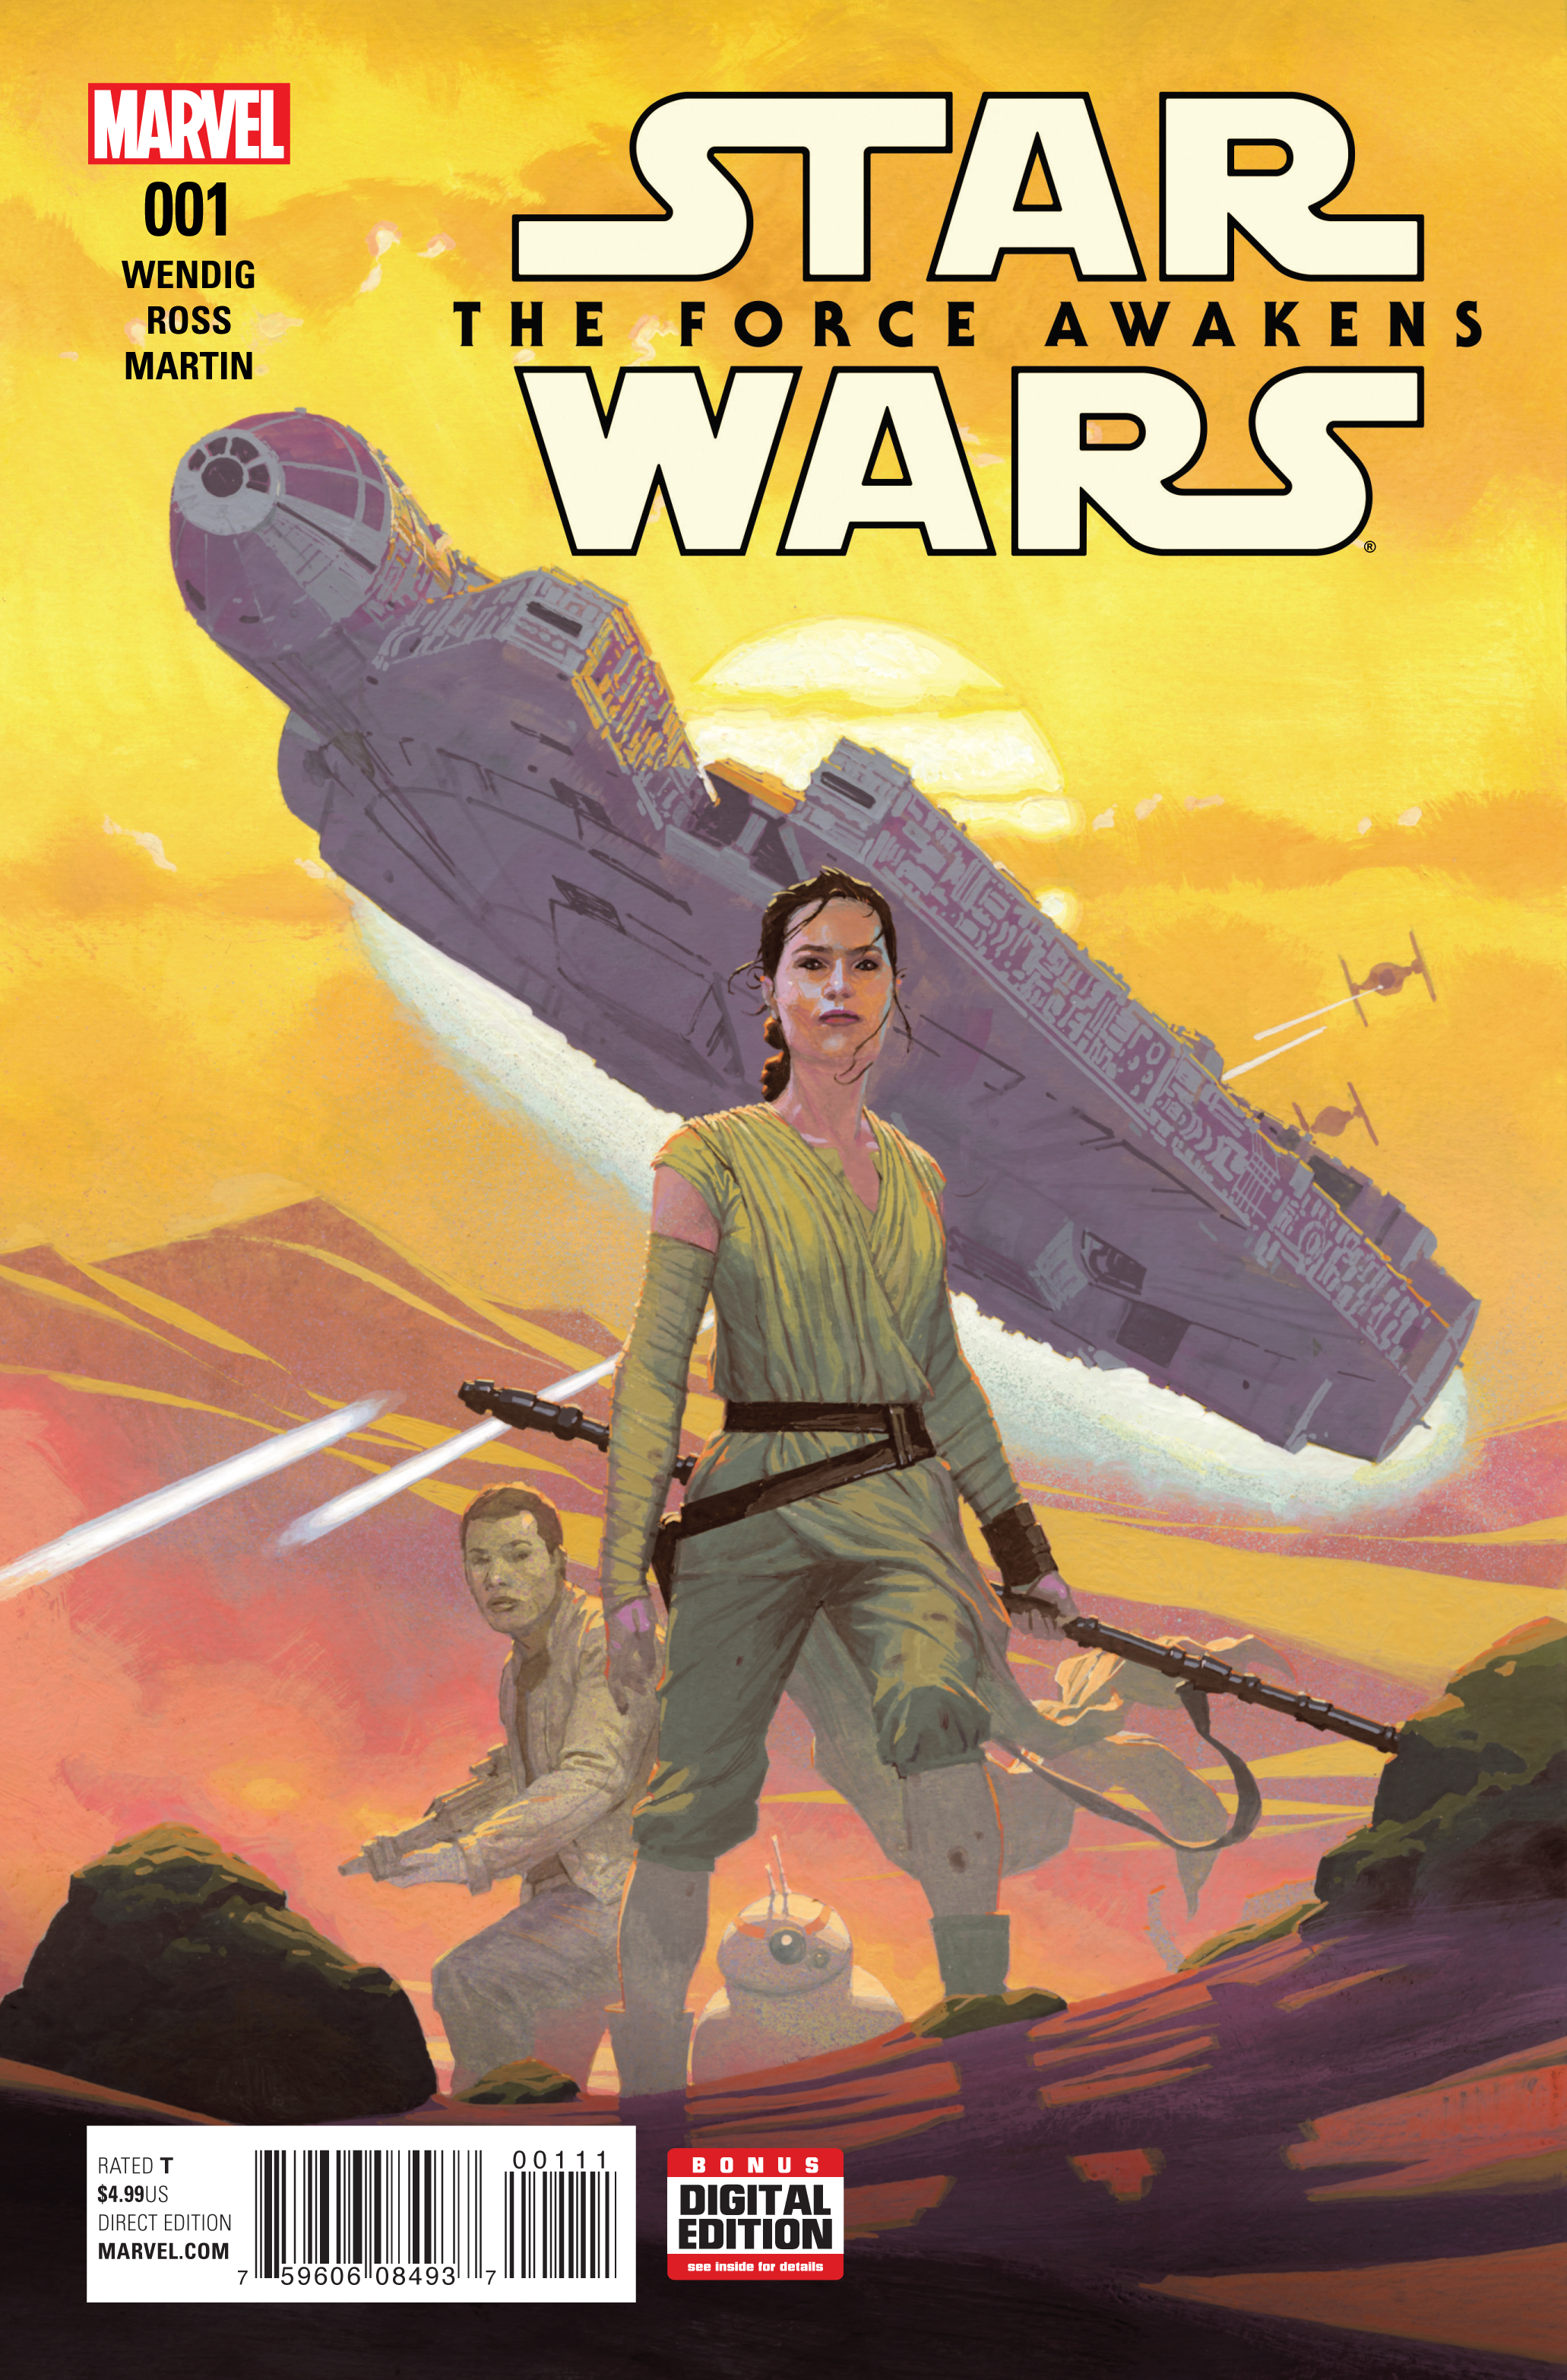 STAR WARS FORCE AWAKENS ADAPTATION #1 (OF 6)